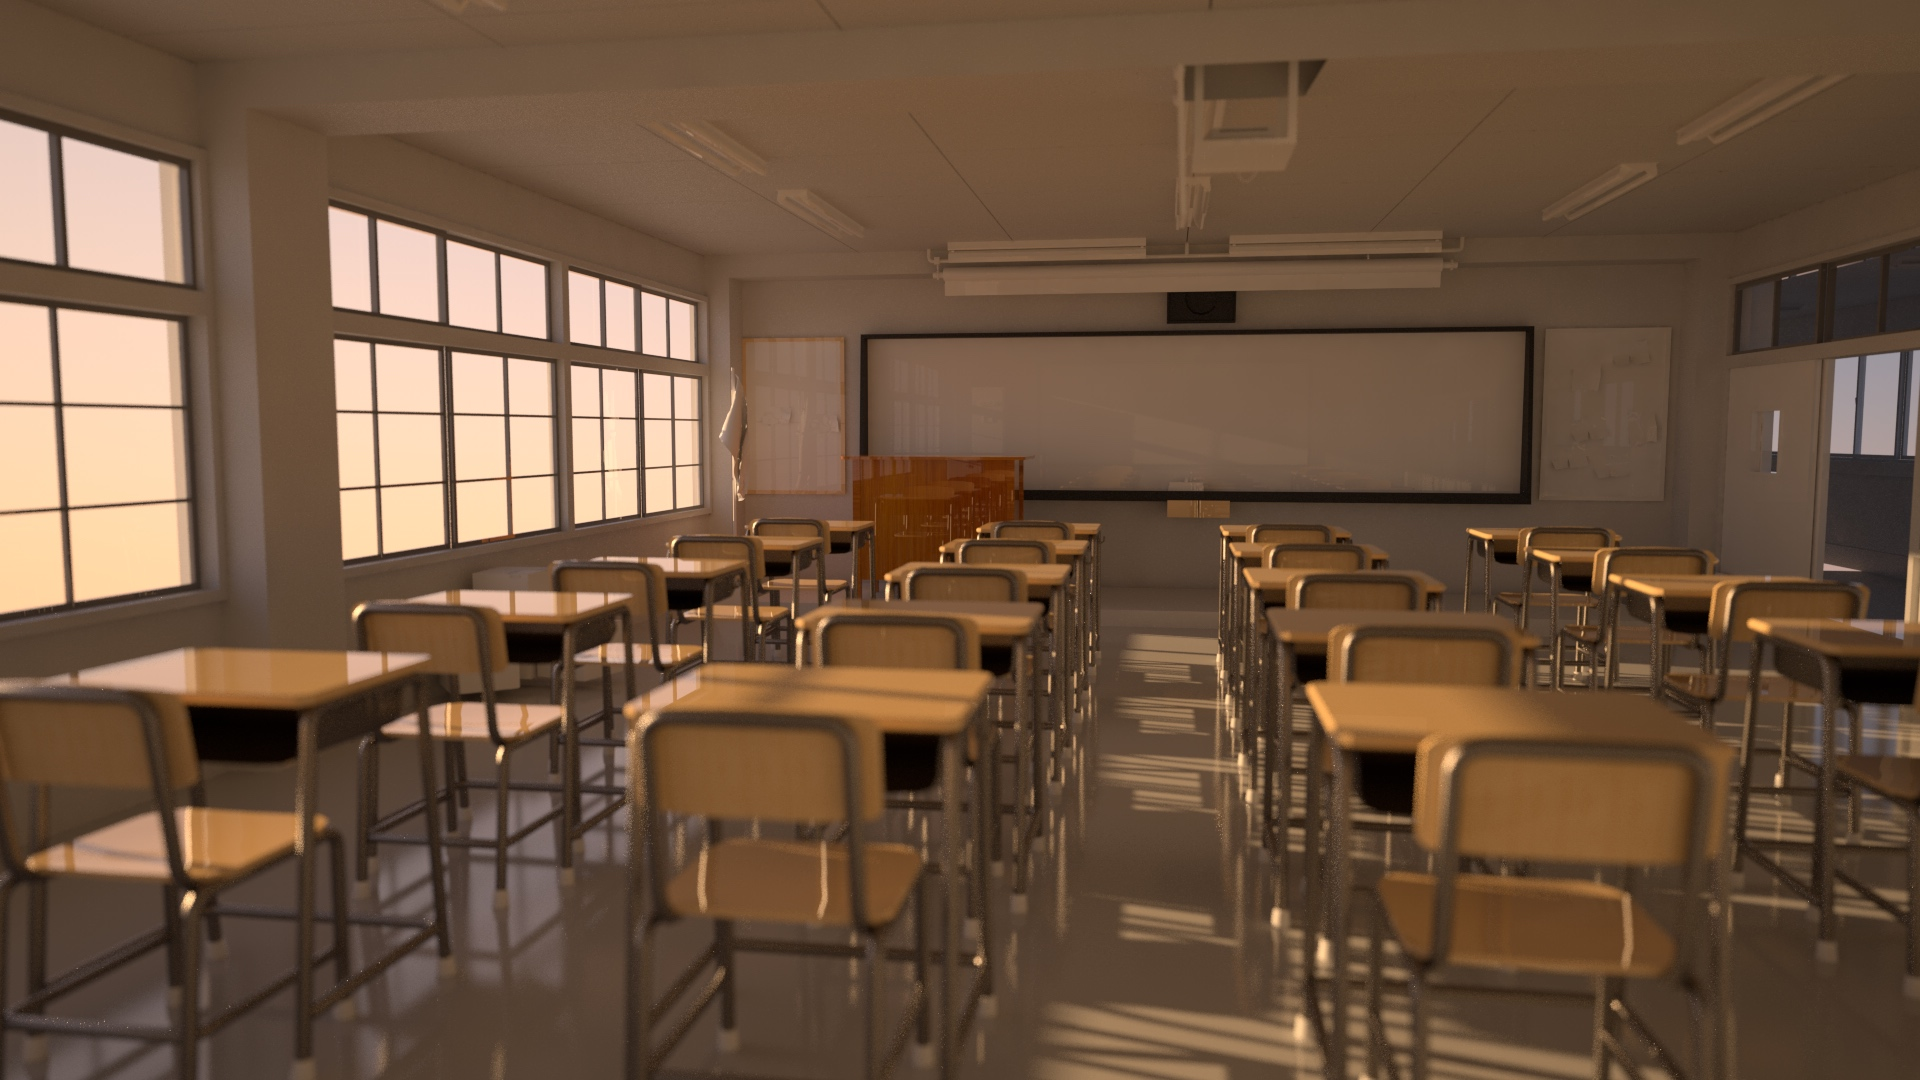 Classroom (Lighting, Redshift)